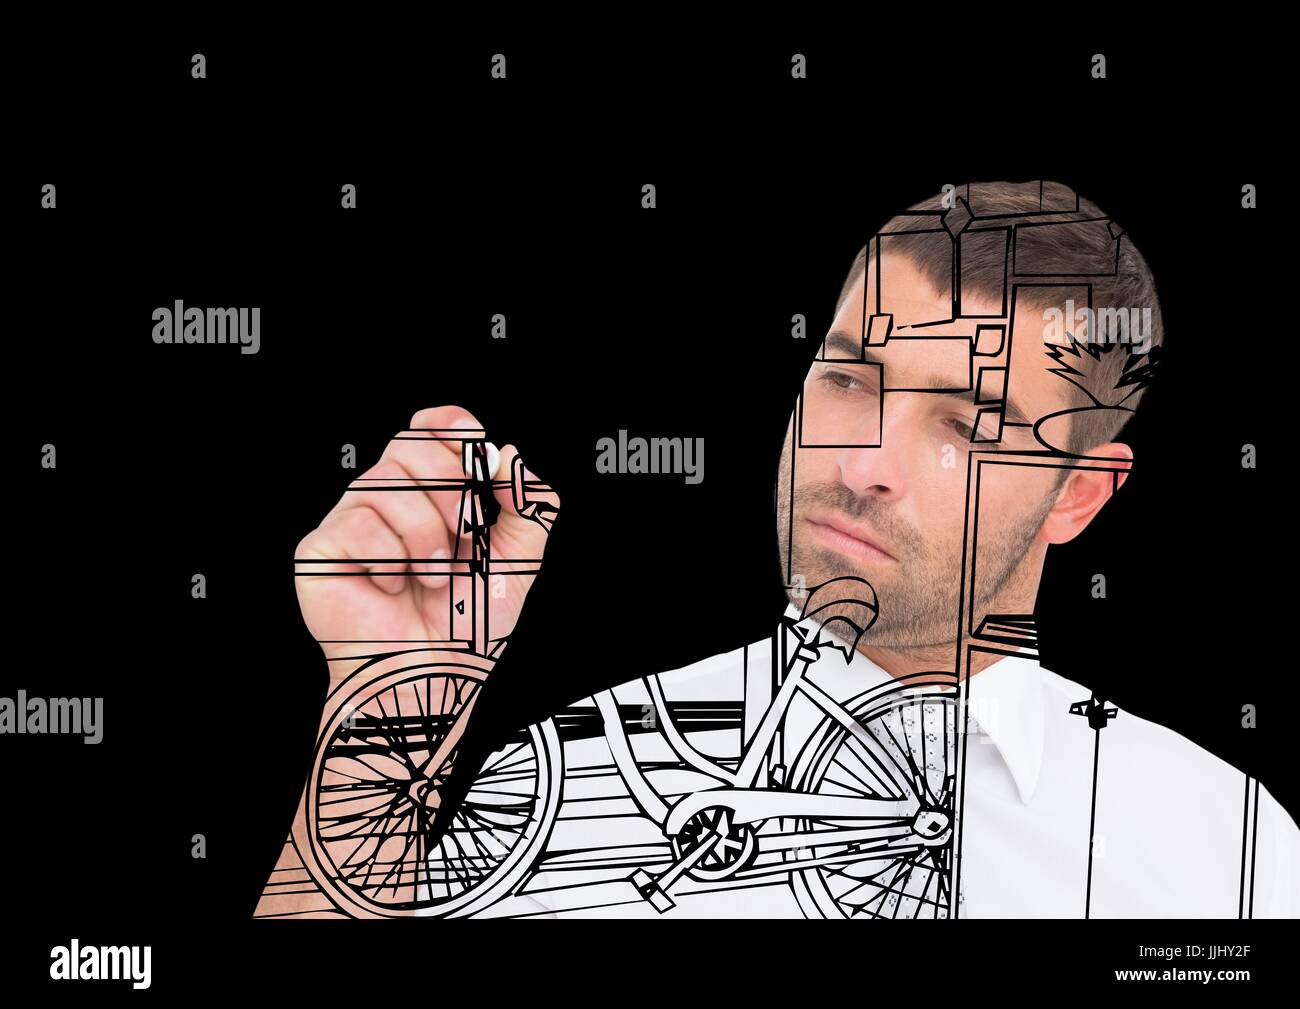 Drawing Lines In Office : Man drawing office lines on the screen stock photo royalty free